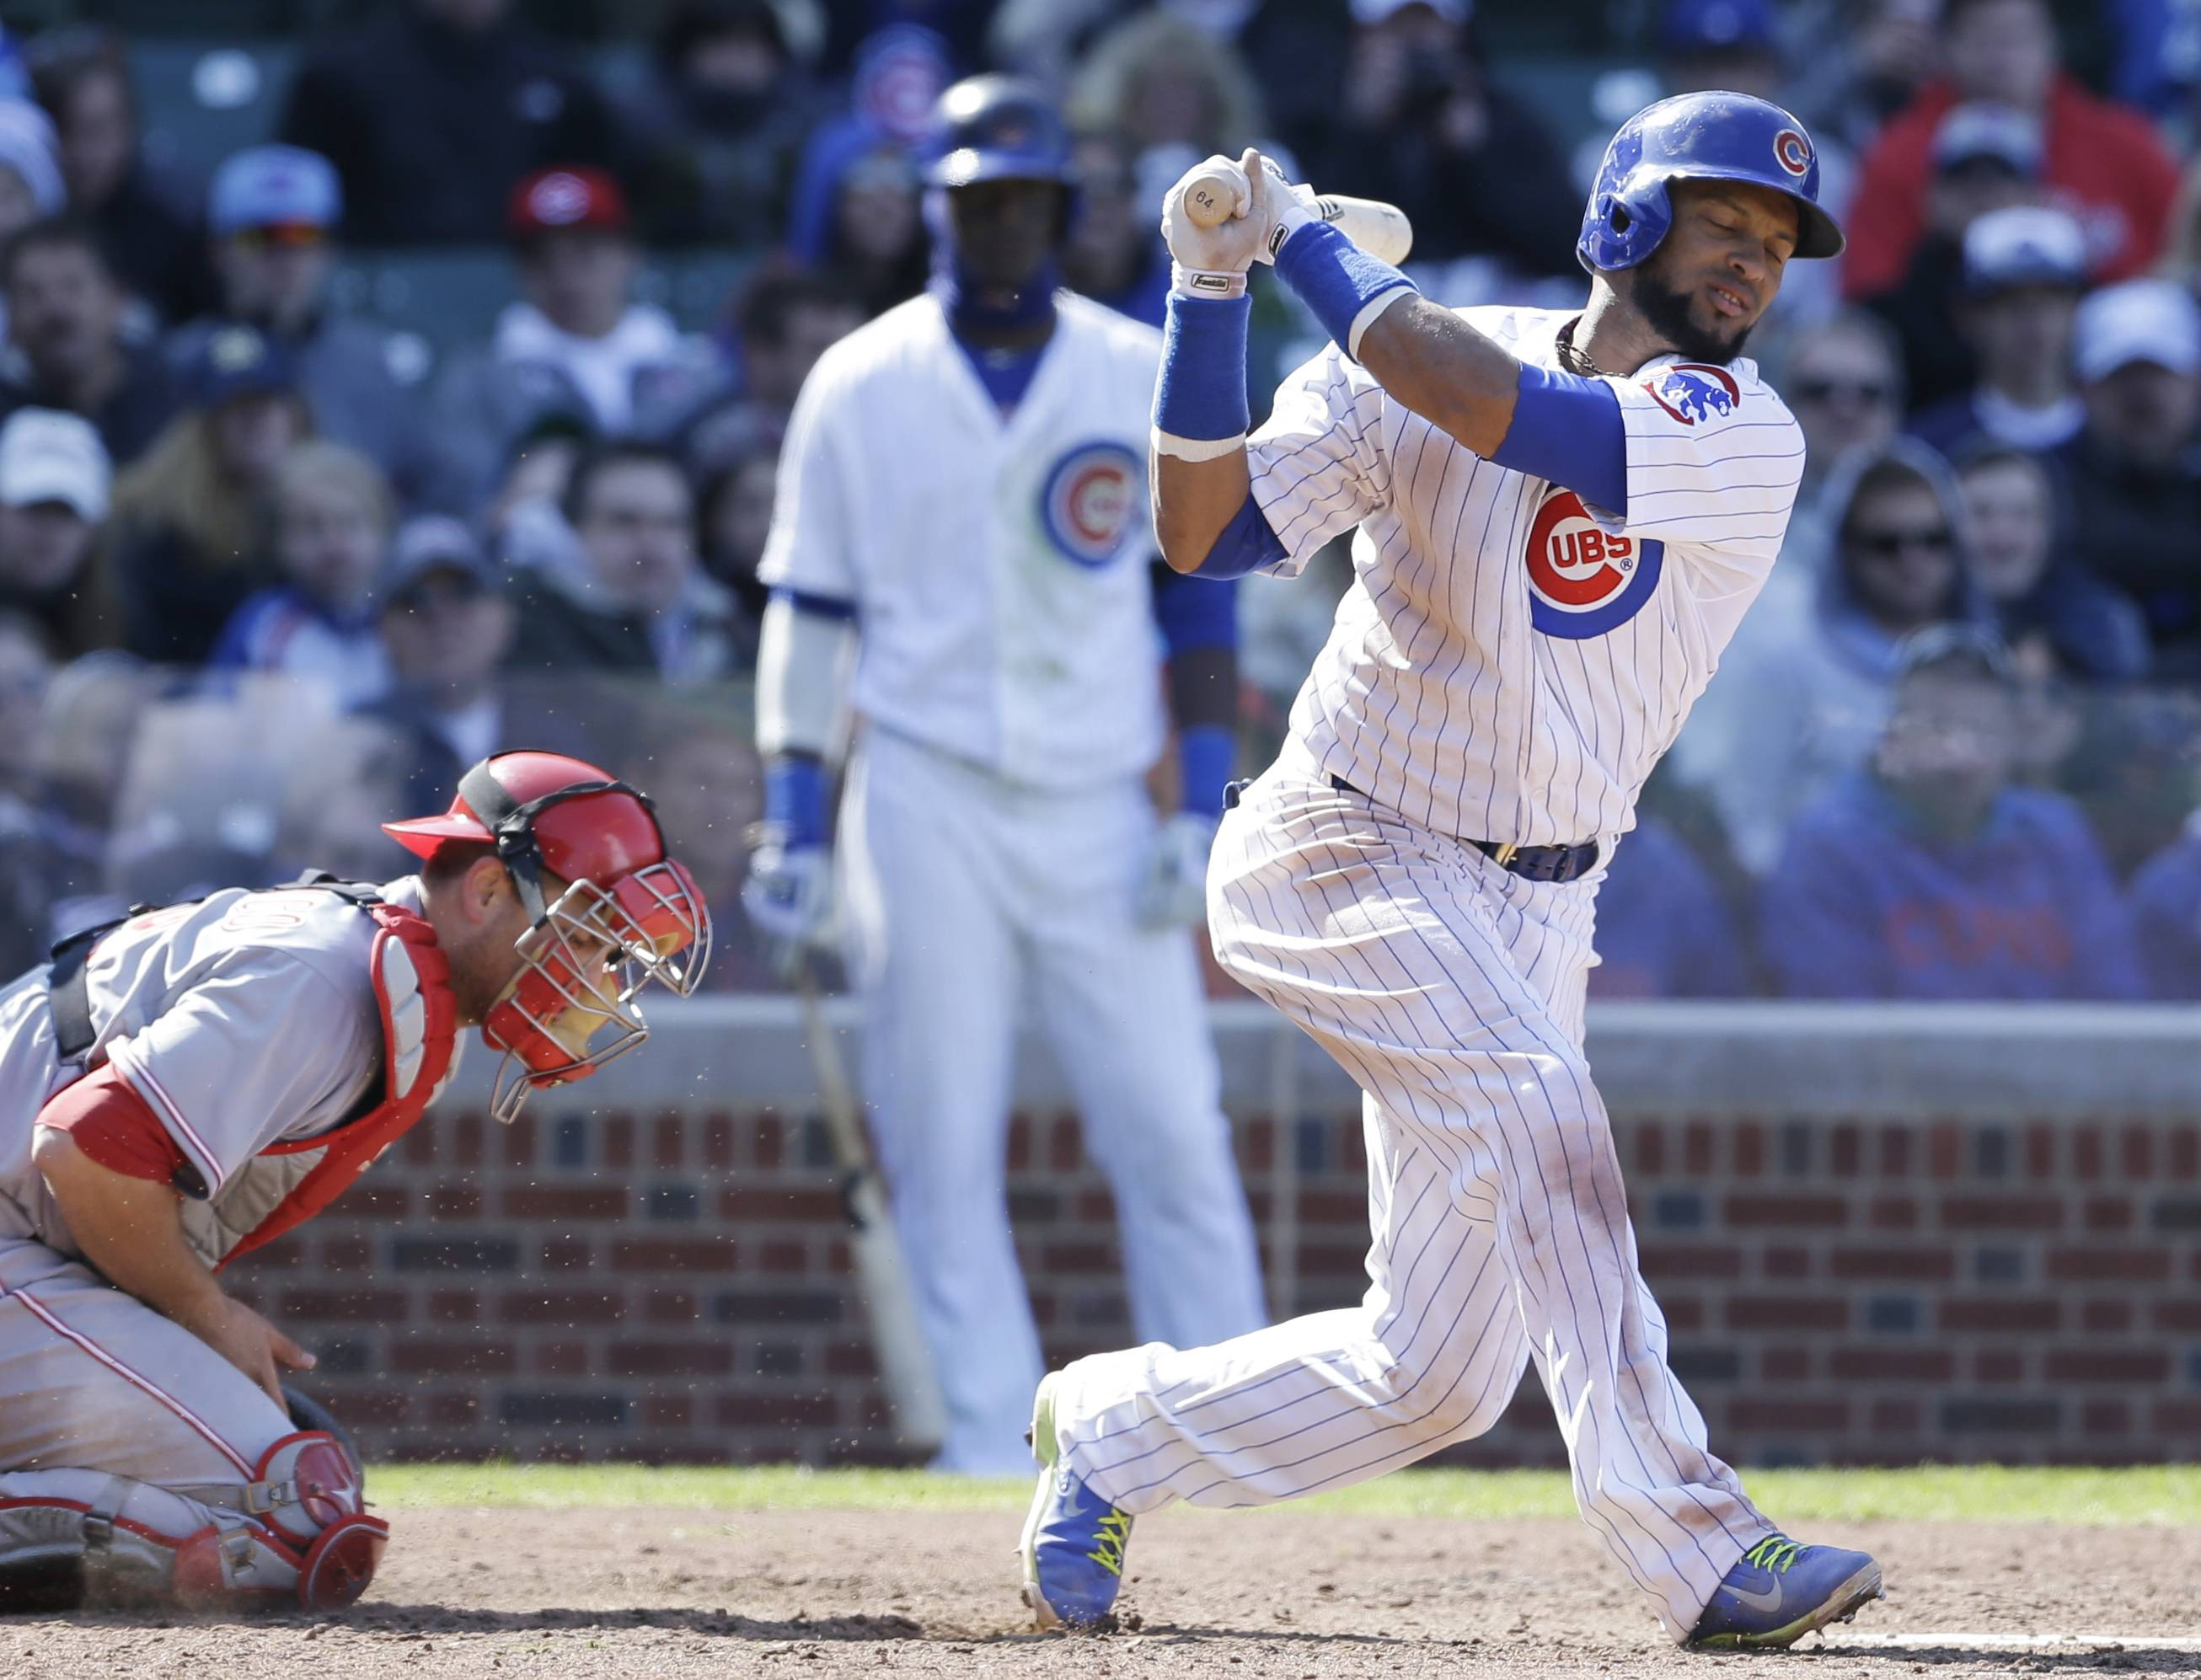 Renteria has message for his 4-11 Cubs